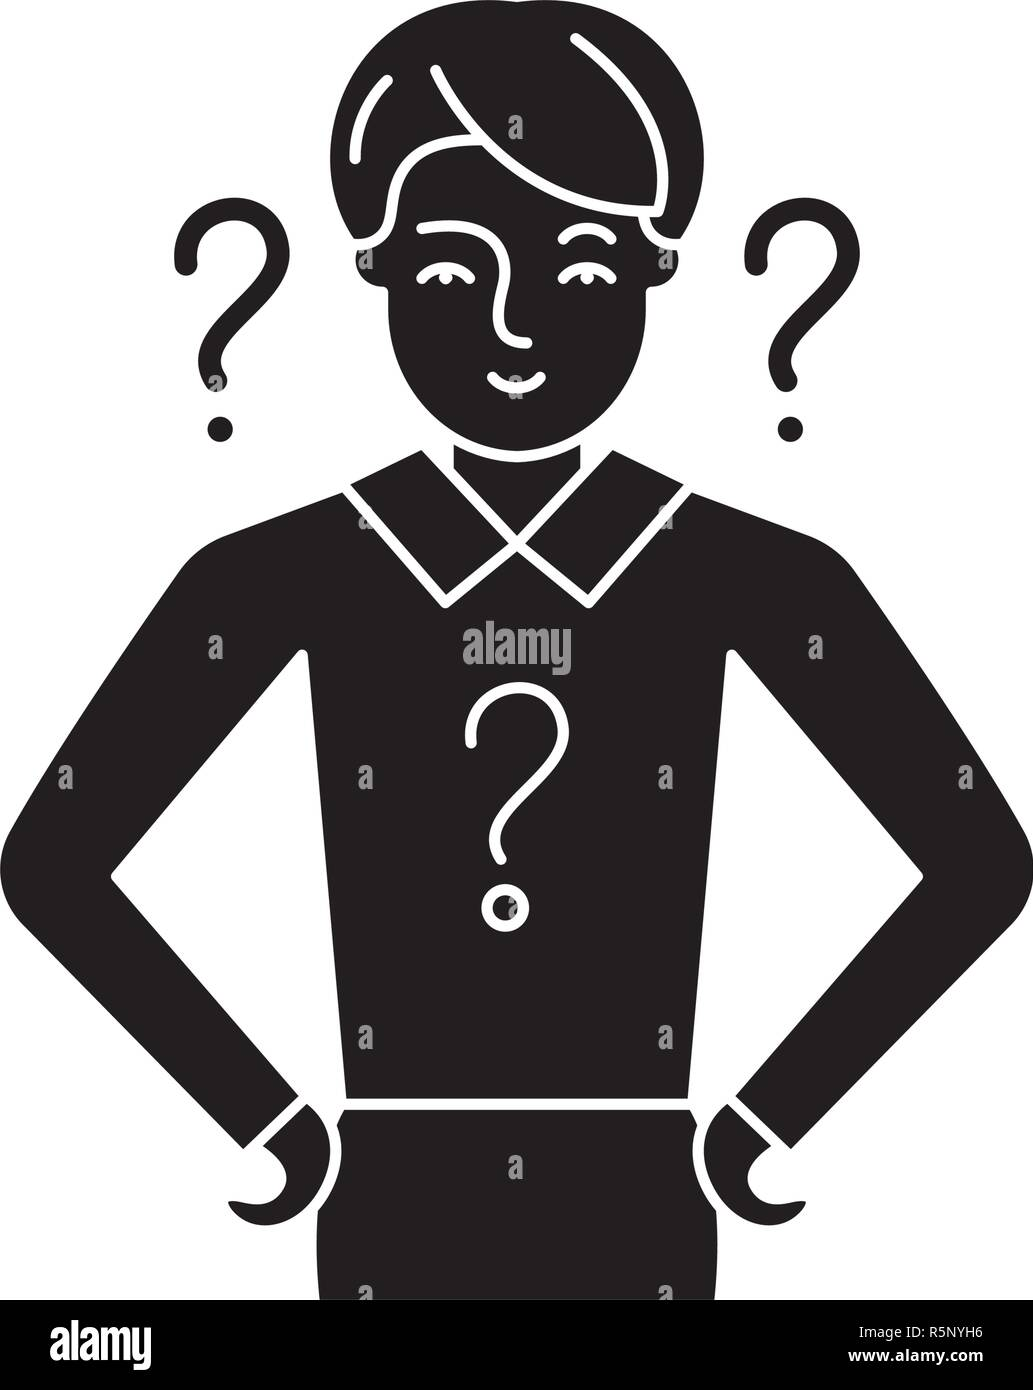 Management issues black icon, vector sign on isolated background. Management issues concept symbol, illustration  - Stock Vector